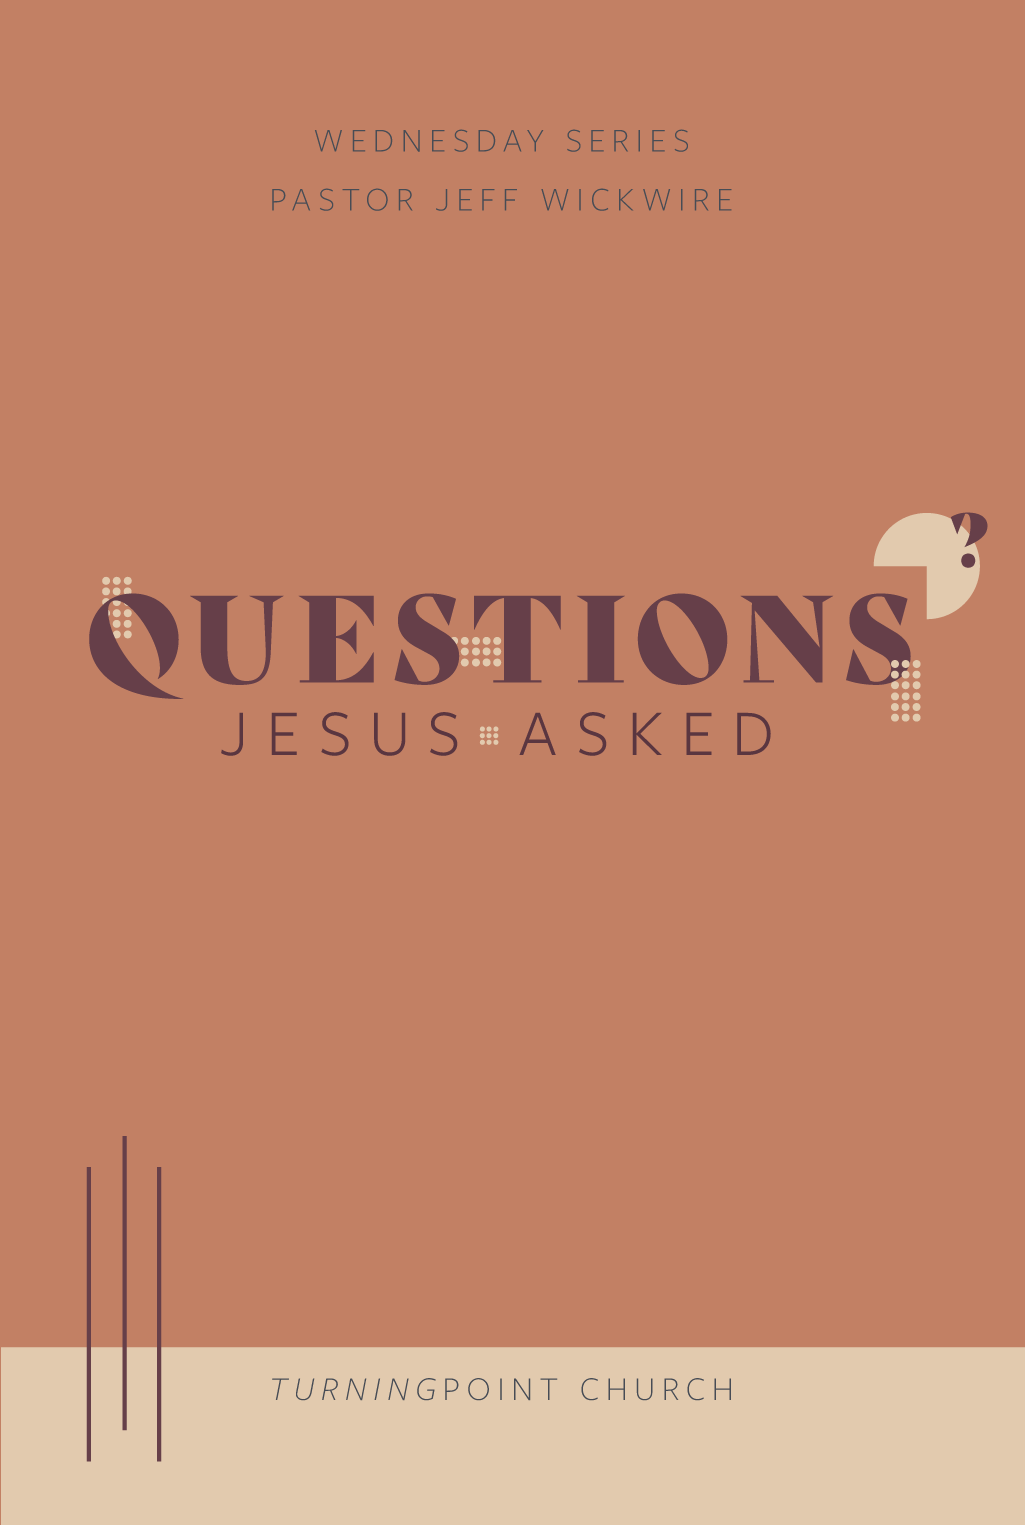 00 - Questions Jesus Asked Complete Series By Pastor Jeff Wickwire   LT38732-1